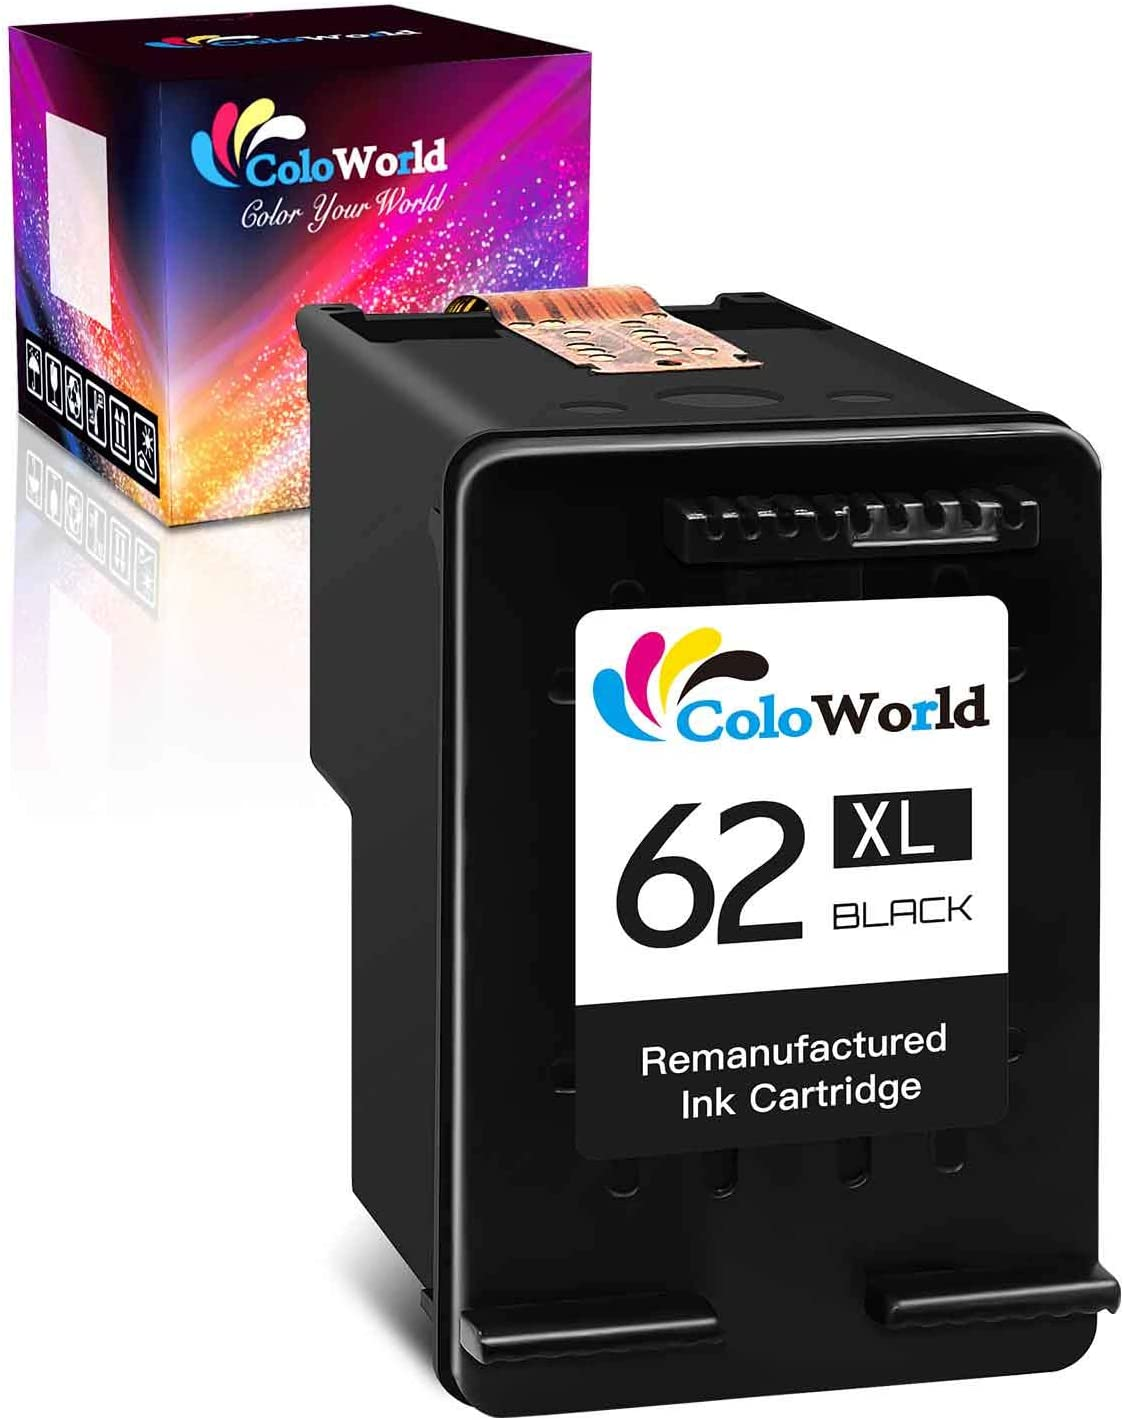 ColoWorld Remanufactured Ink Cartridge Replacement for HP 62XL 62 XL Work with Envy 7640 5660 5540 5661 5642 5640 5640 5663 5544 5542 5549 OfficeJet 5740 250 5745 5746 200 Printer Tray ( 1 Black)